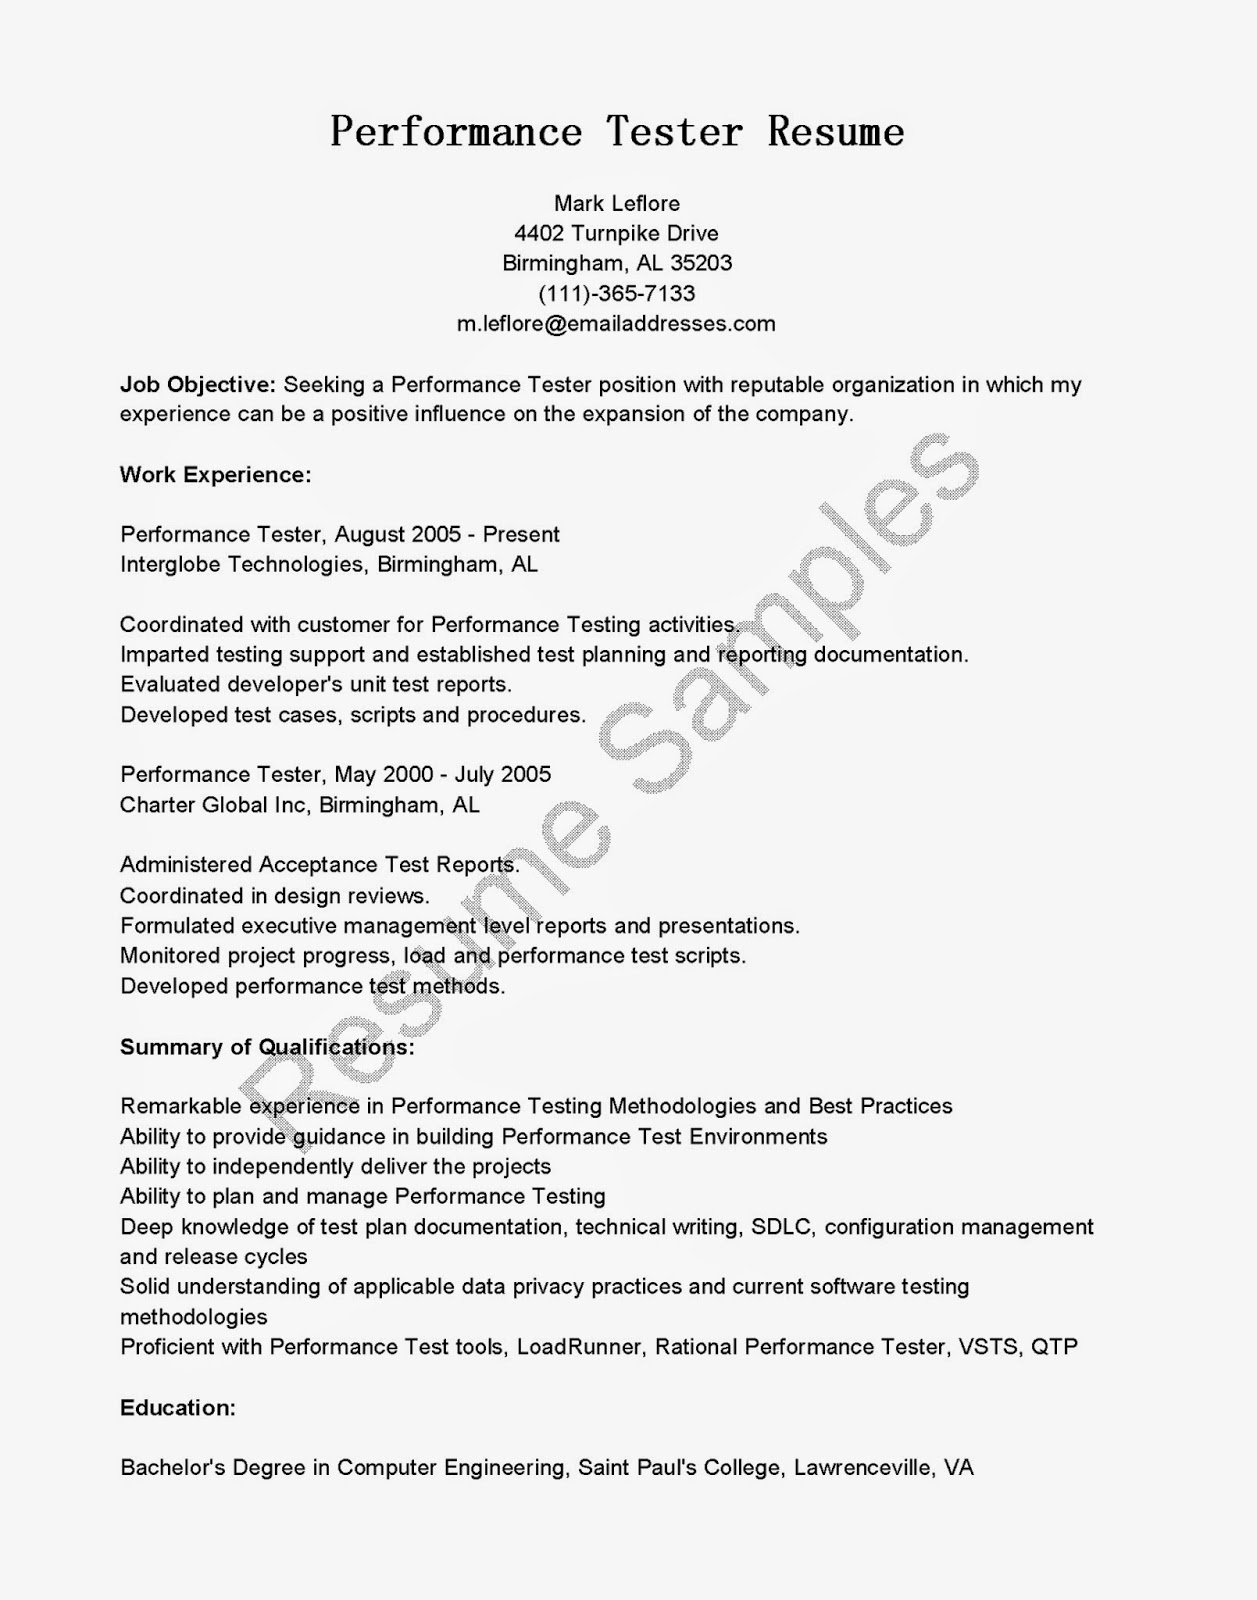 Performance Resume Example Resume Samples Performance Tester Resume Sample